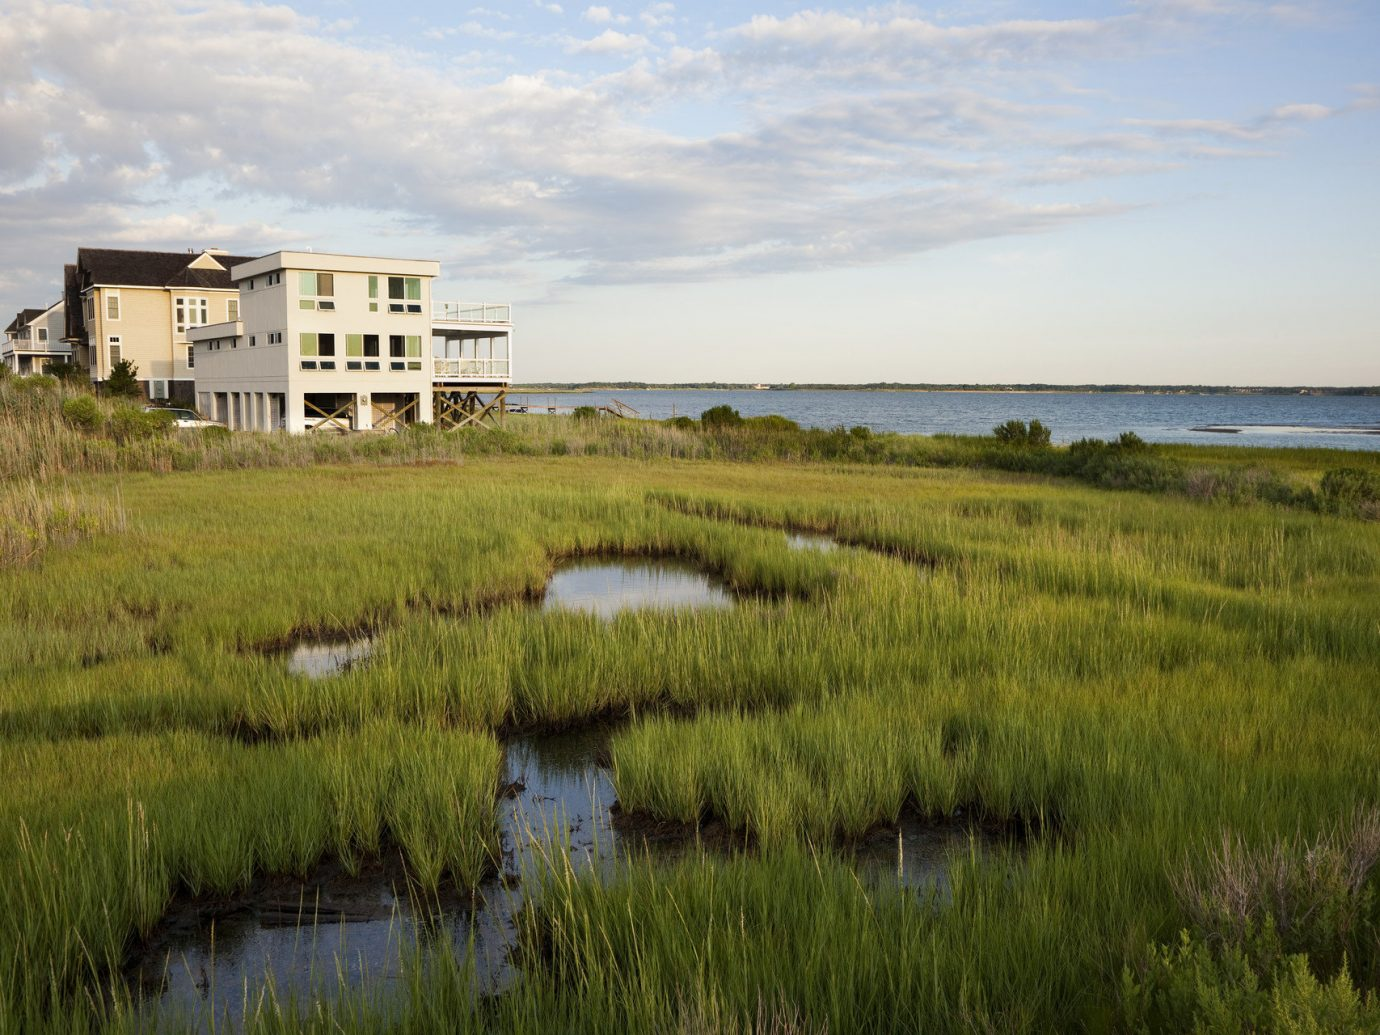 Beach East Coast USA Trip Ideas grass sky outdoor habitat field geographical feature marsh natural environment wetland shore grassland ecosystem Nature plain prairie salt marsh grassy Coast green rural area meadow landscape reflection Sea waterway polder bog lush pasture land